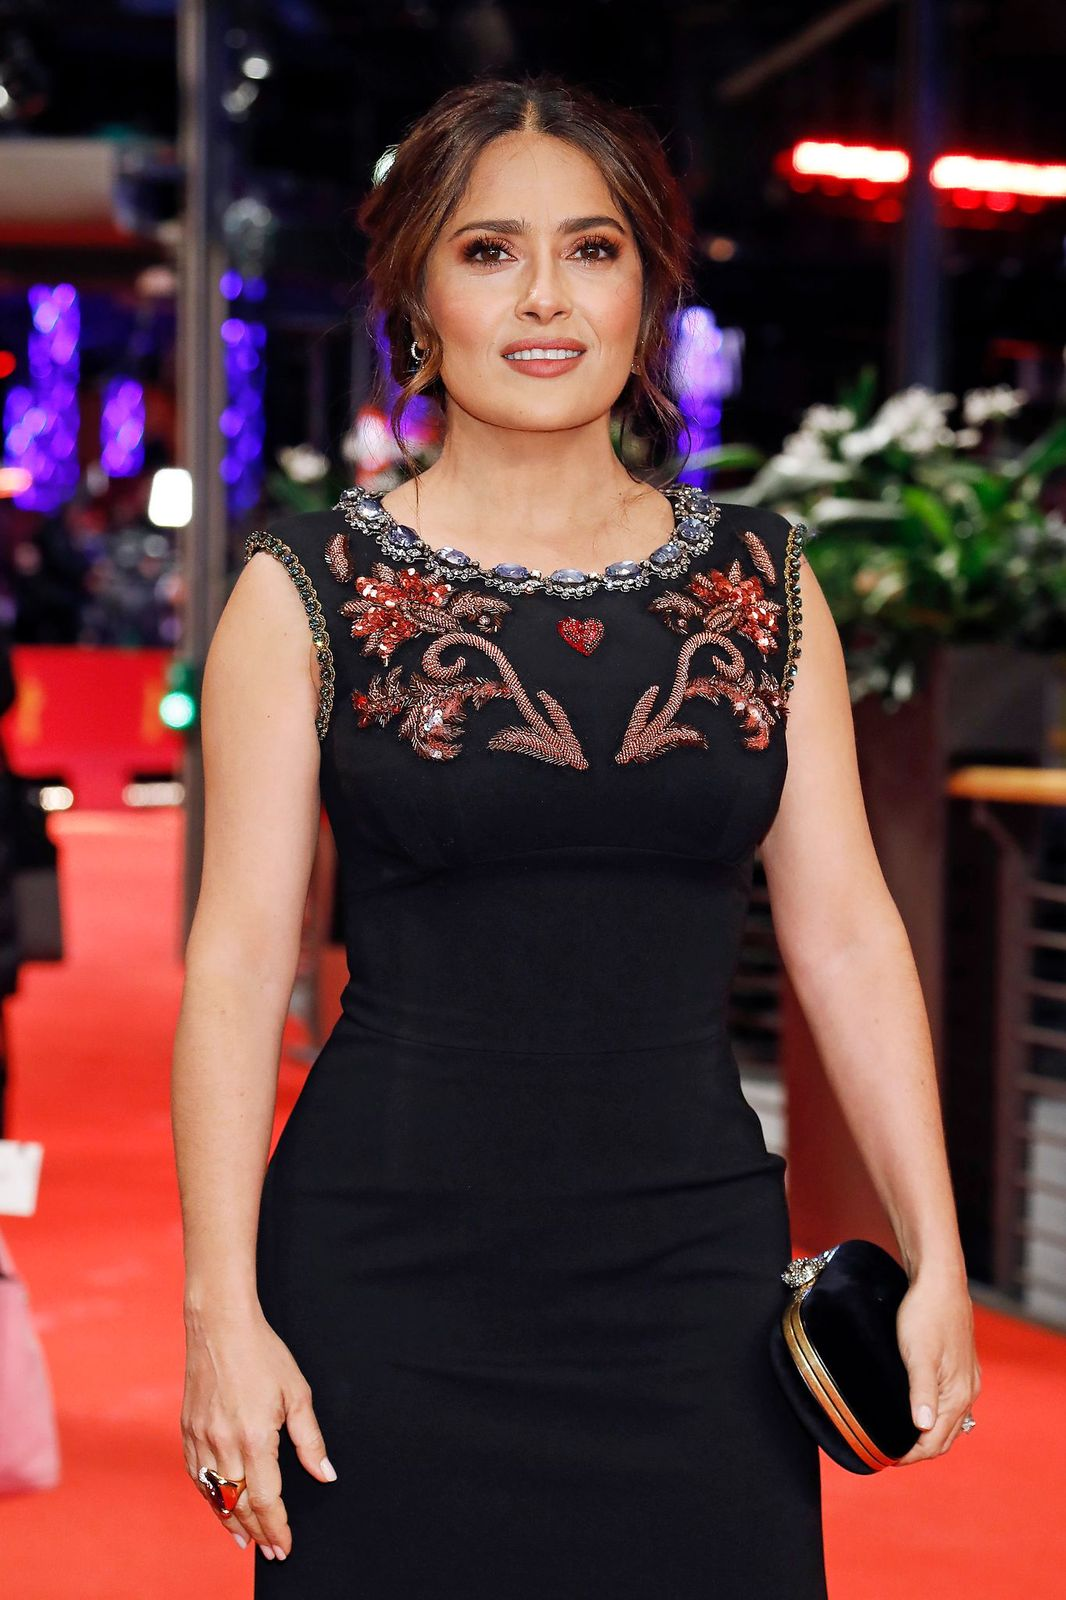 """Salma Hayek during the red carpet premiere of """"The Roads Not Taken""""during the 70th Berlinale International Film Festival on February 26, 2020, in Berlin, Germany 